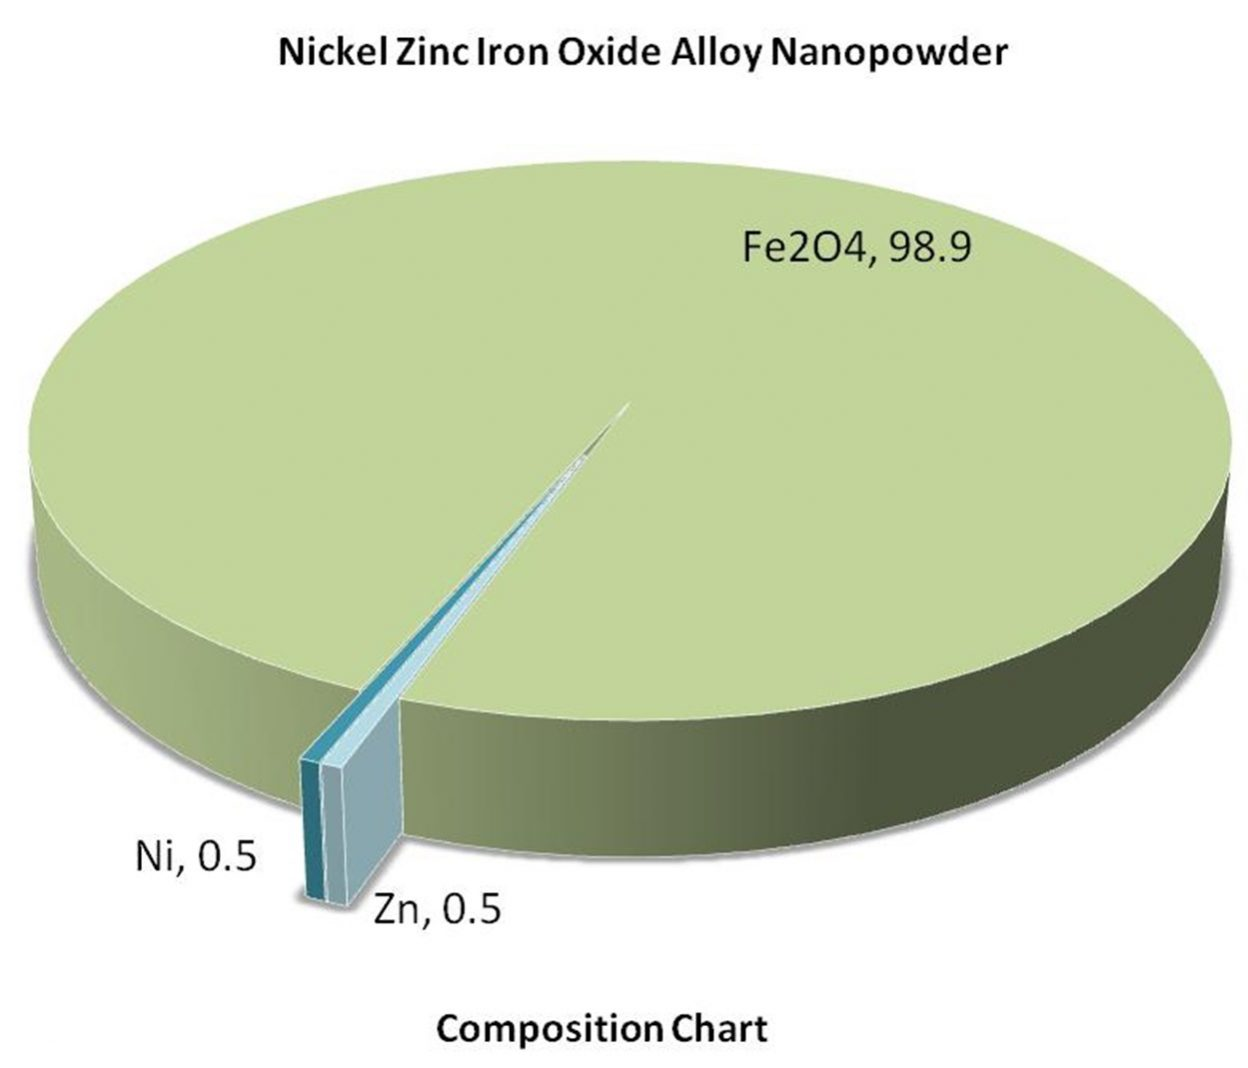 Composition Chart – Ni0.5Zn0.5Fe2O4 Alloy Nanoparticles